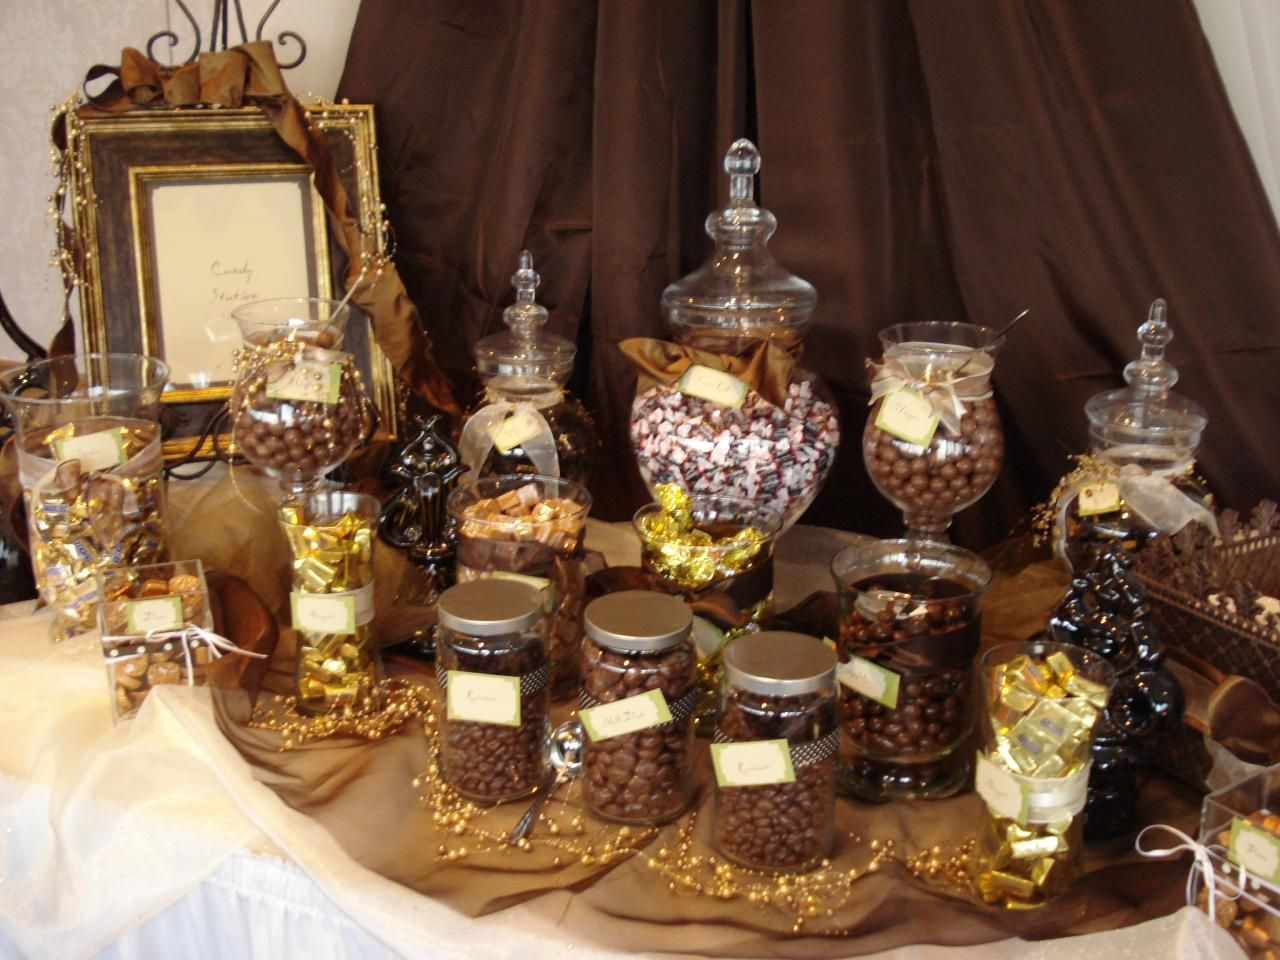 Chocolate Candy Buffet in Brown + Gold - Cream, Gold And Brown Chocolate Buffet Wedding Party Ideas